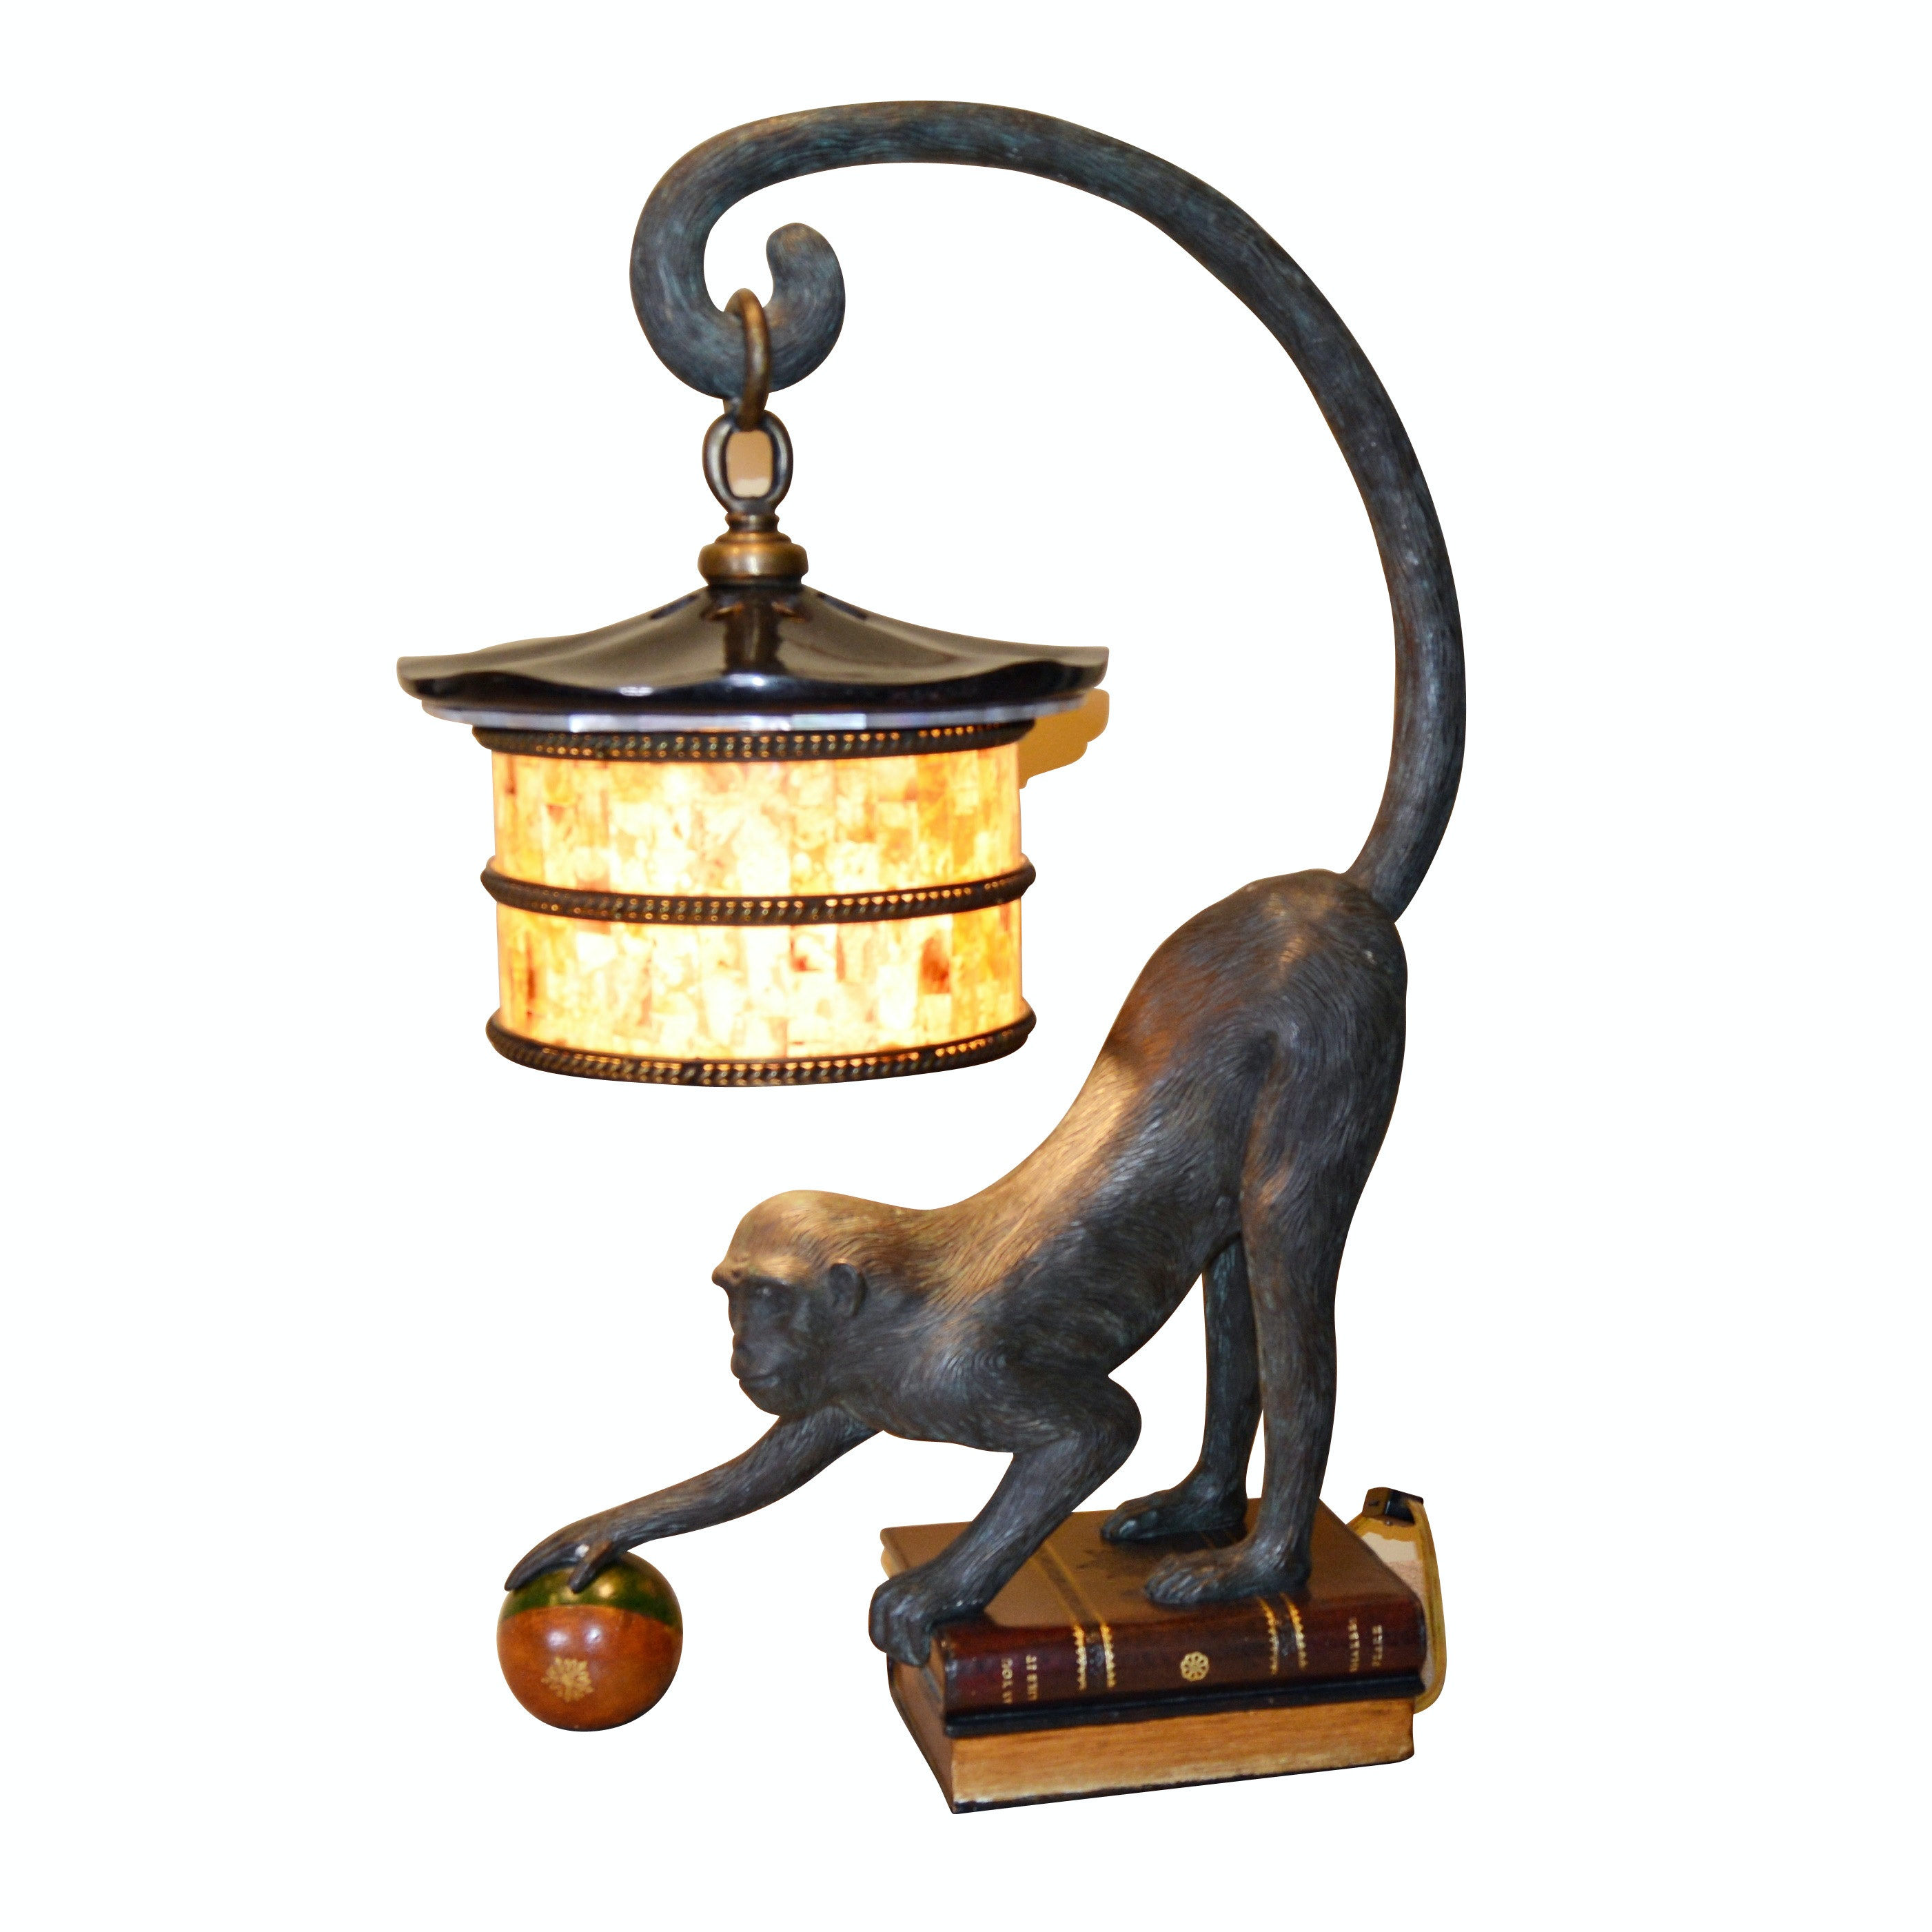 Monkey with Lantern Table Lamp by Maitland-Smith